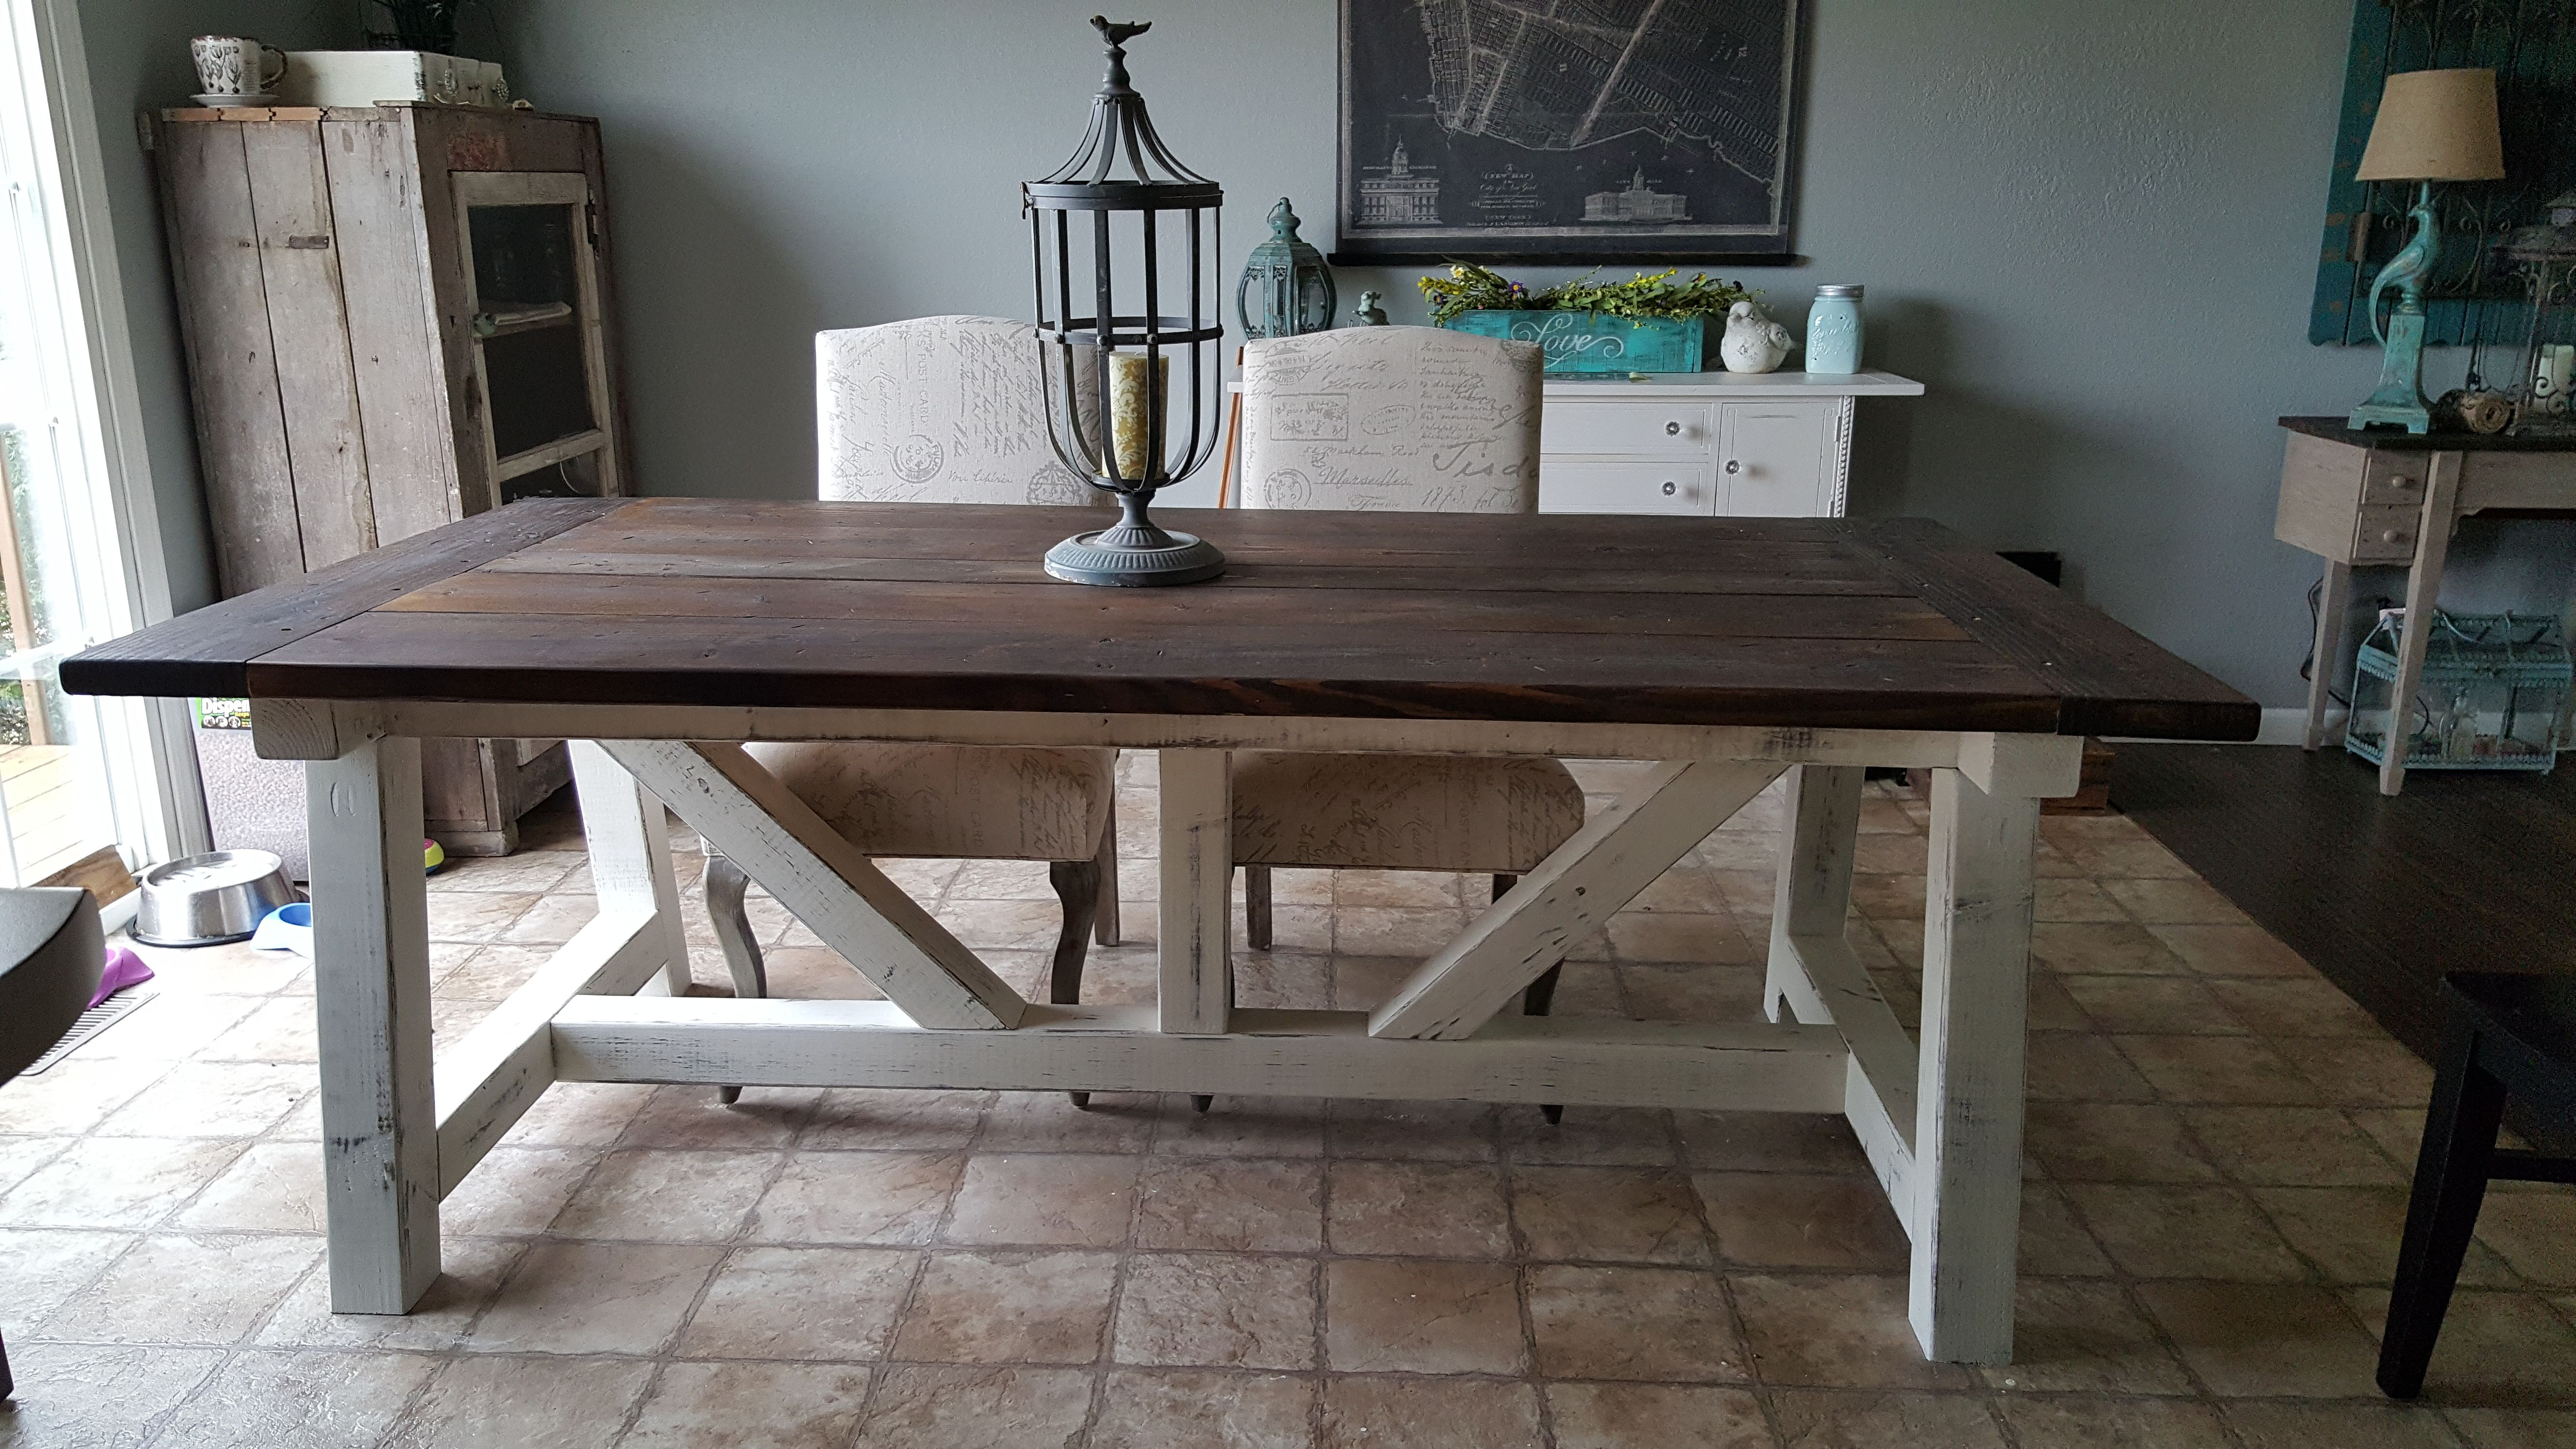 4x6 Truss Beam Farm Table Do It Yourself Home Projects From Ana